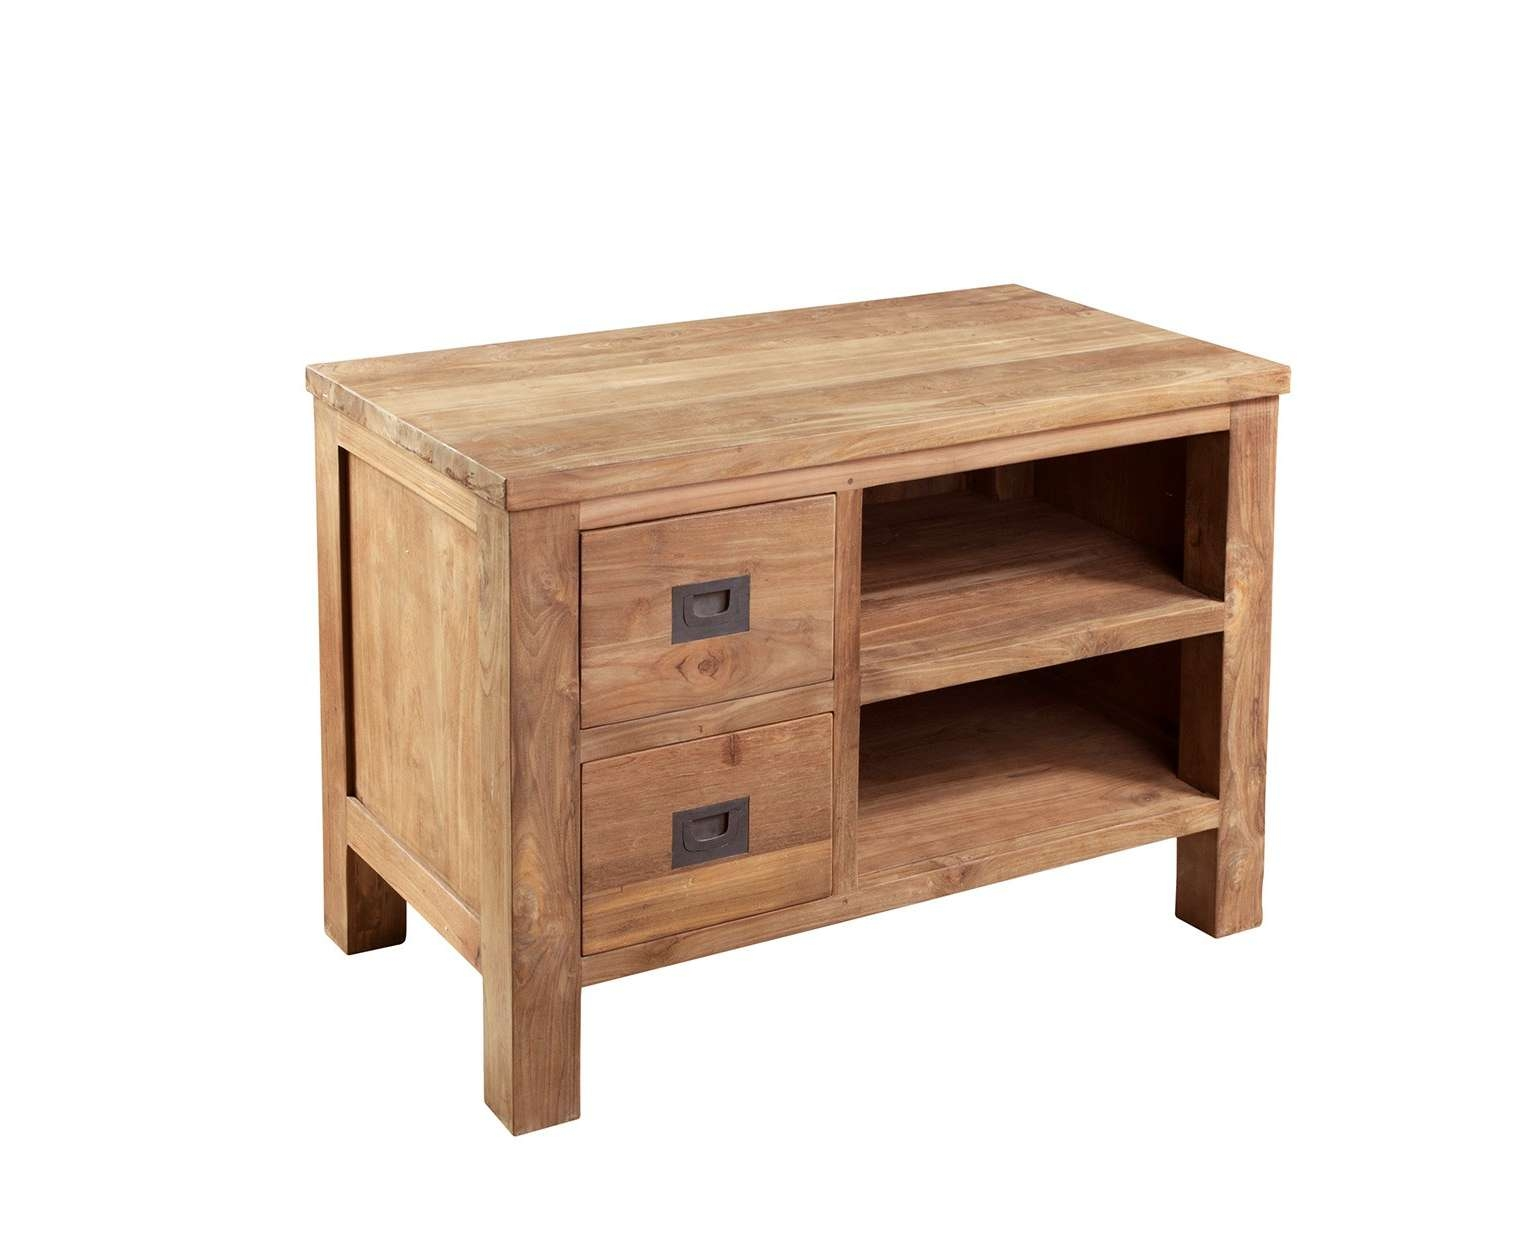 Lifestyle Tv Cabinet Small – Raft Furniture, London Pertaining To Small Tv Cabinets (View 4 of 20)